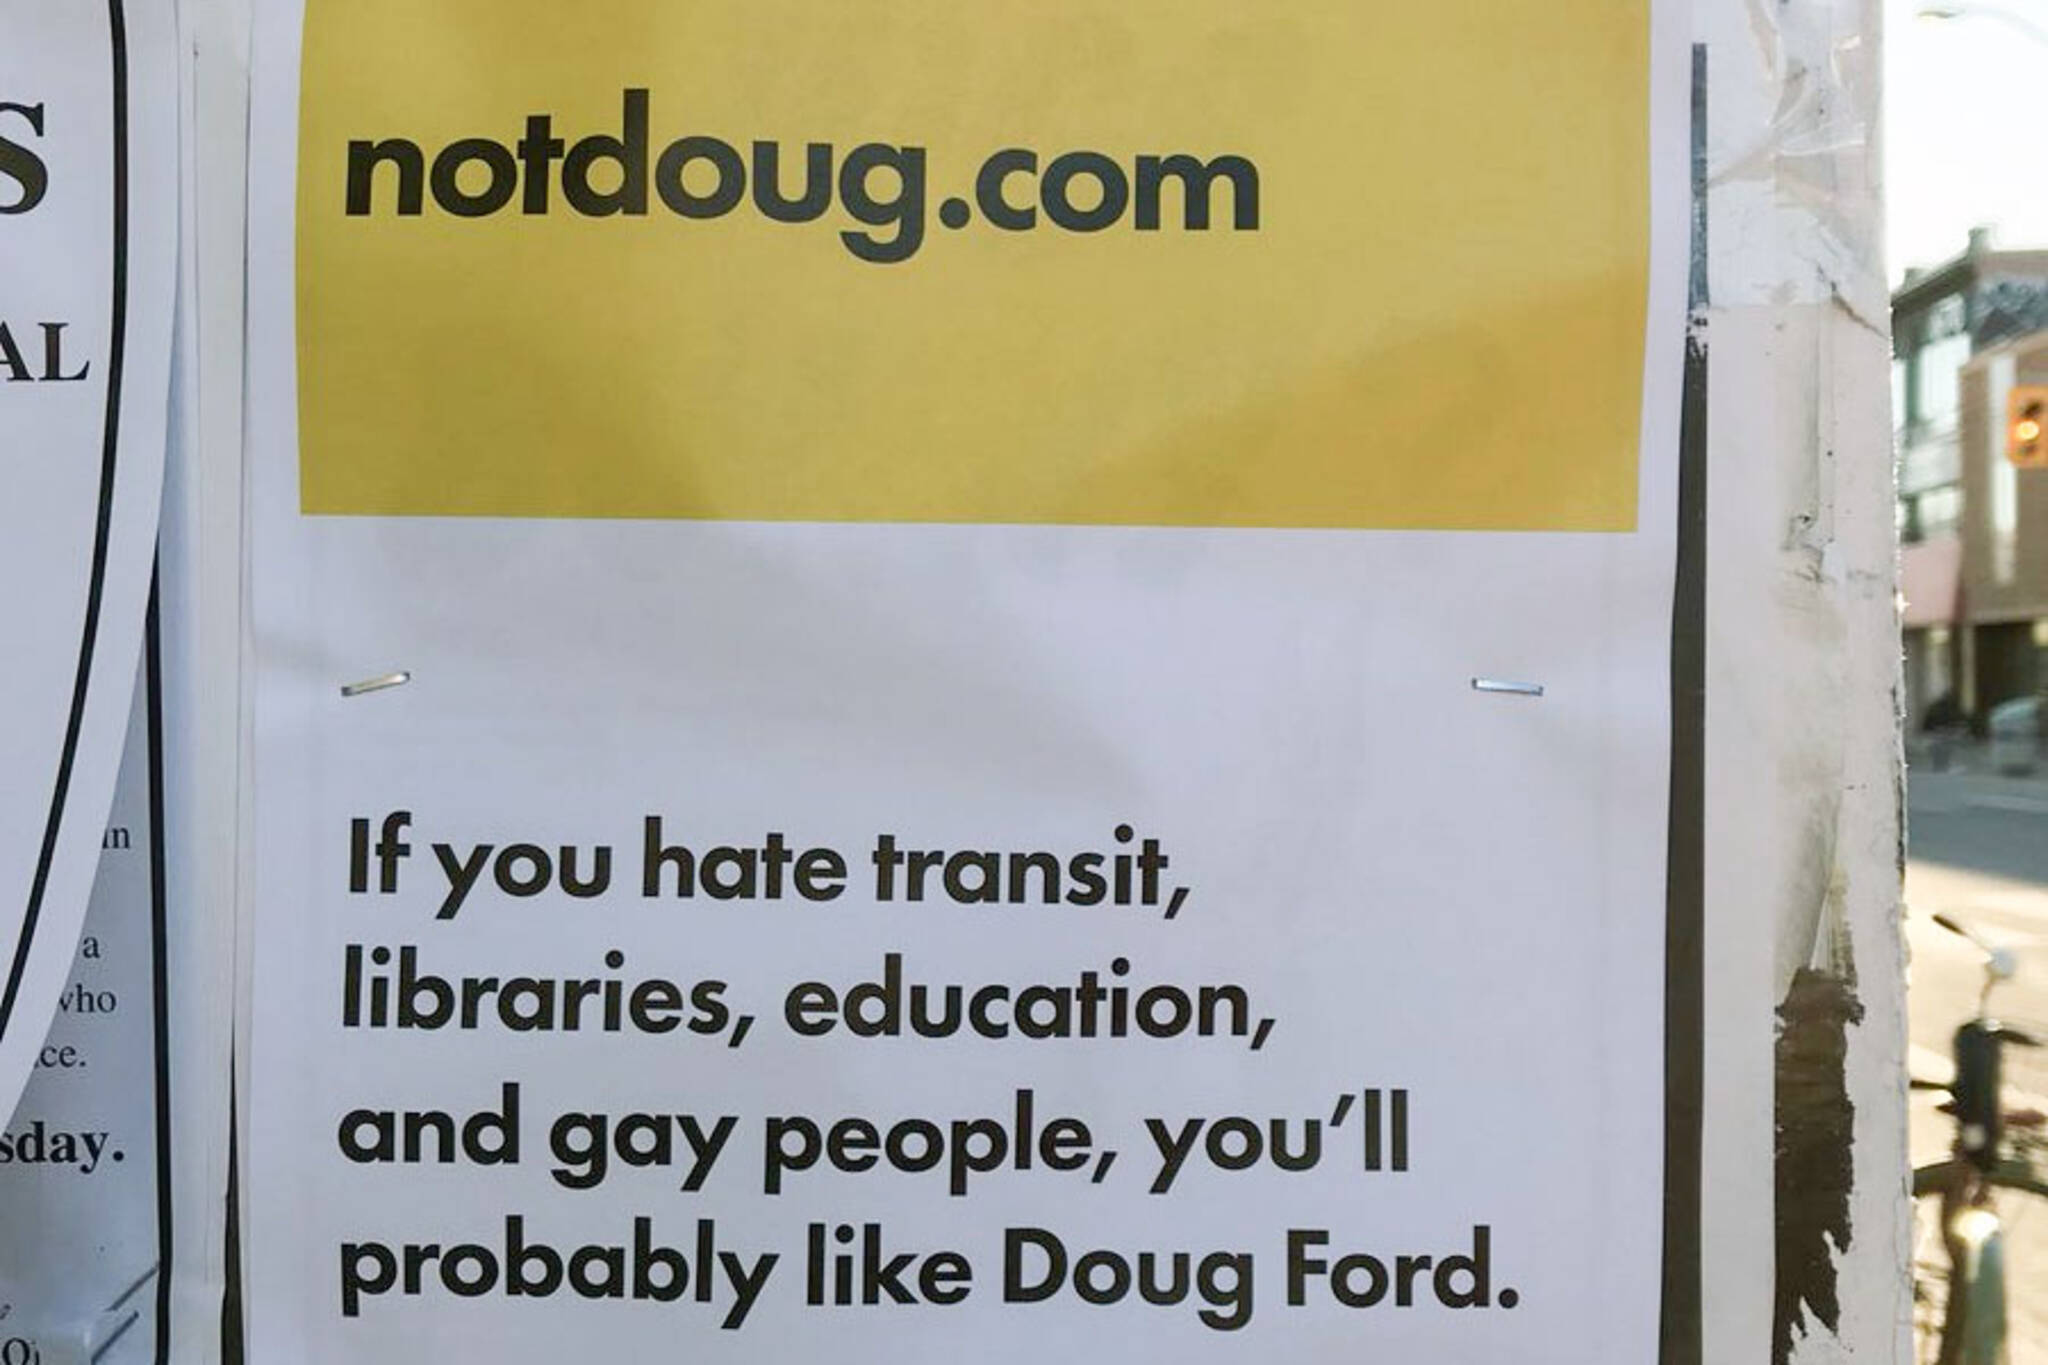 Not Doug Ford